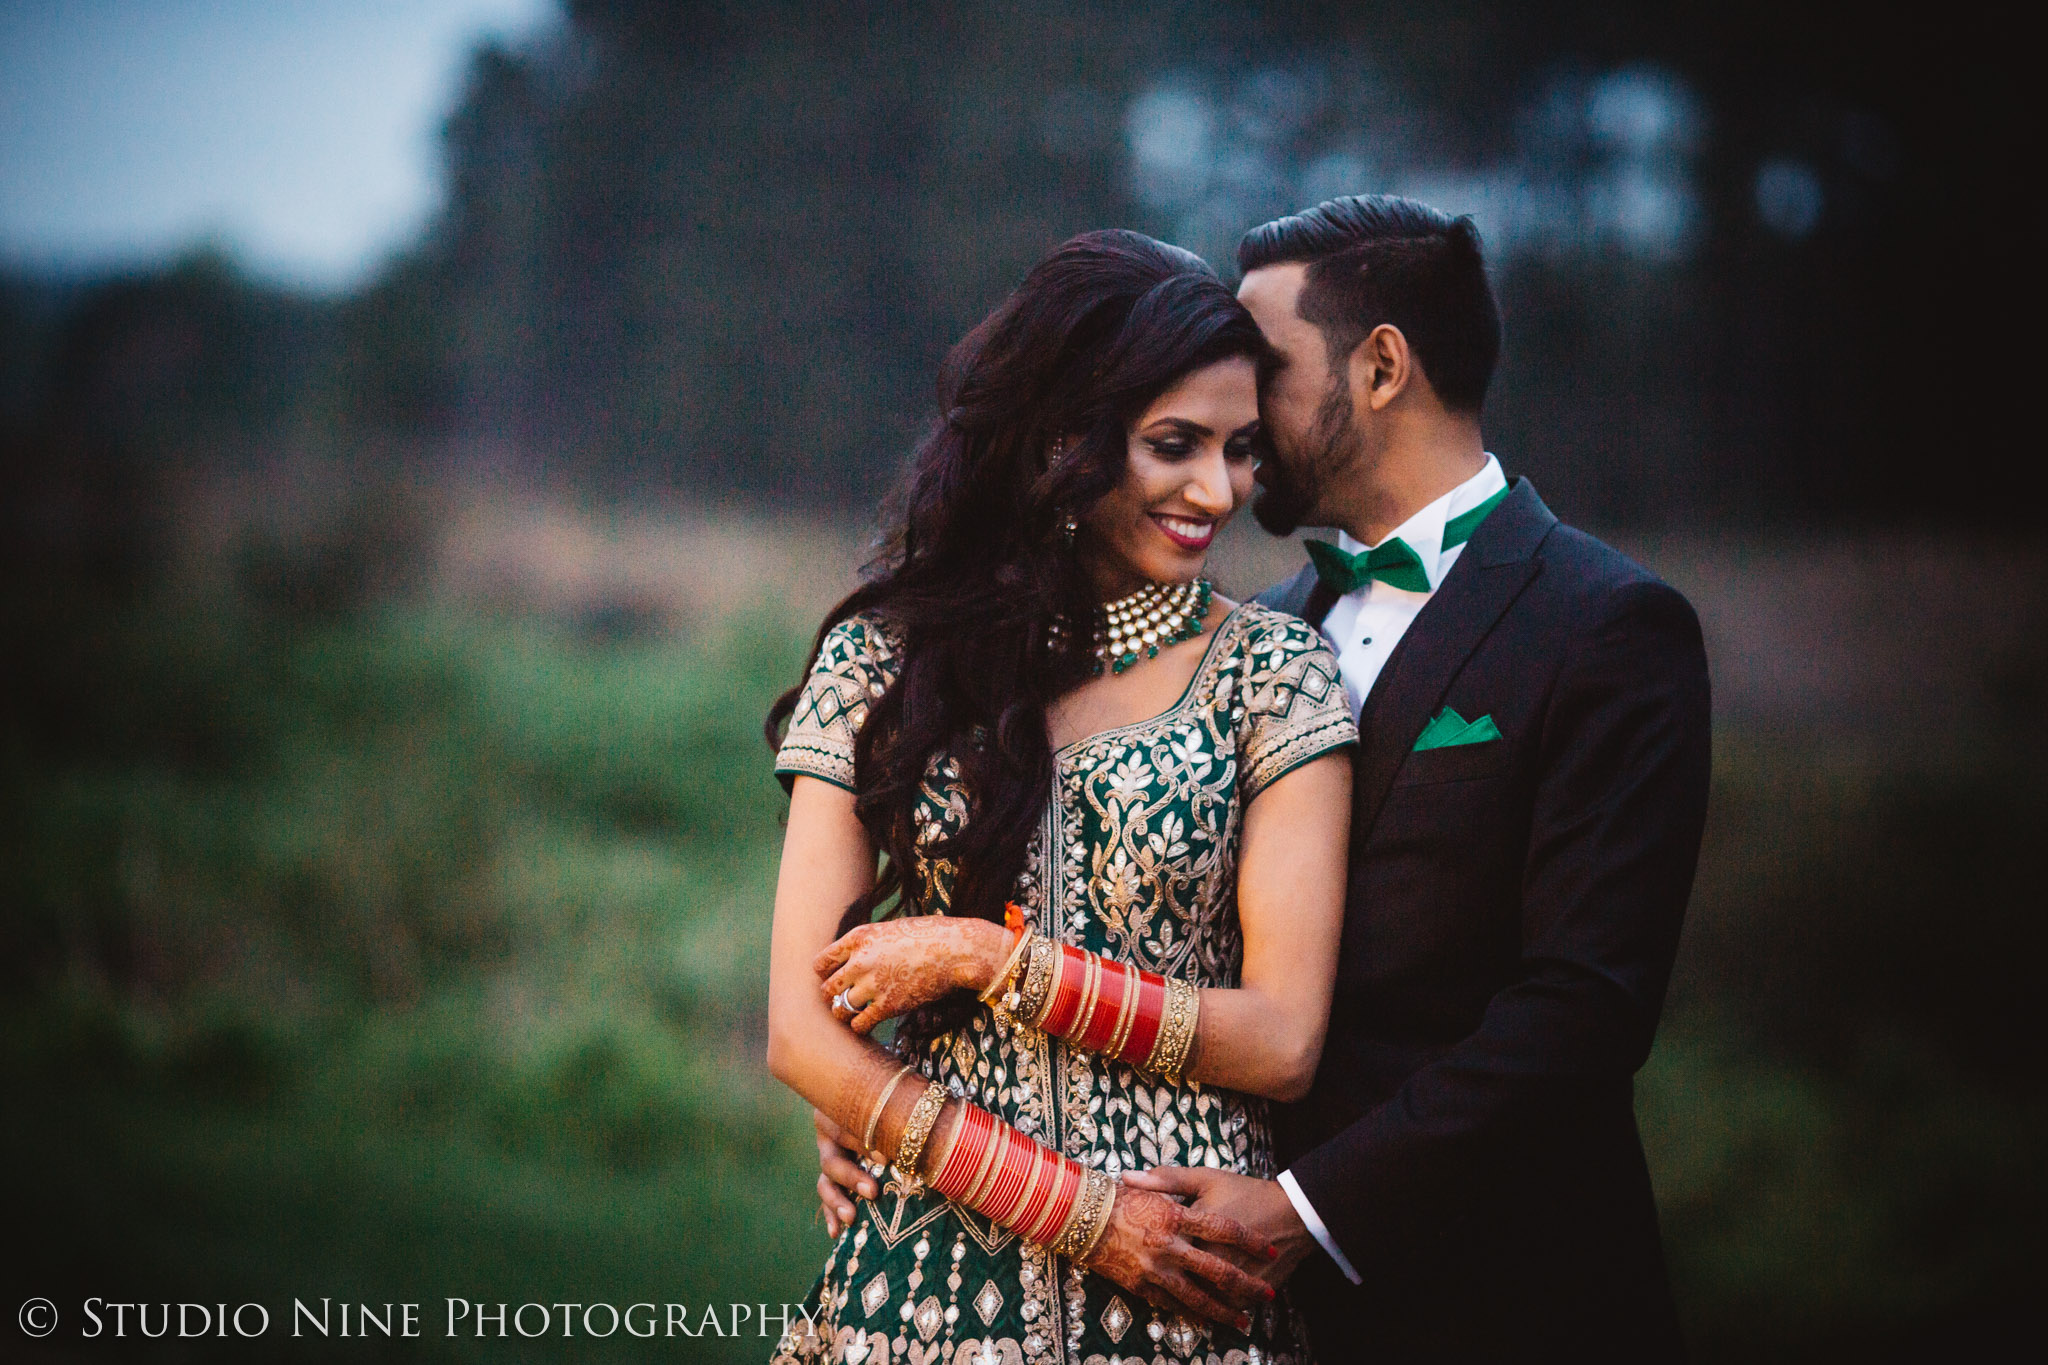 North Carolina Indian Wedding | Priya + Abhi - STUDIO 9 PHOTO + VIDEO